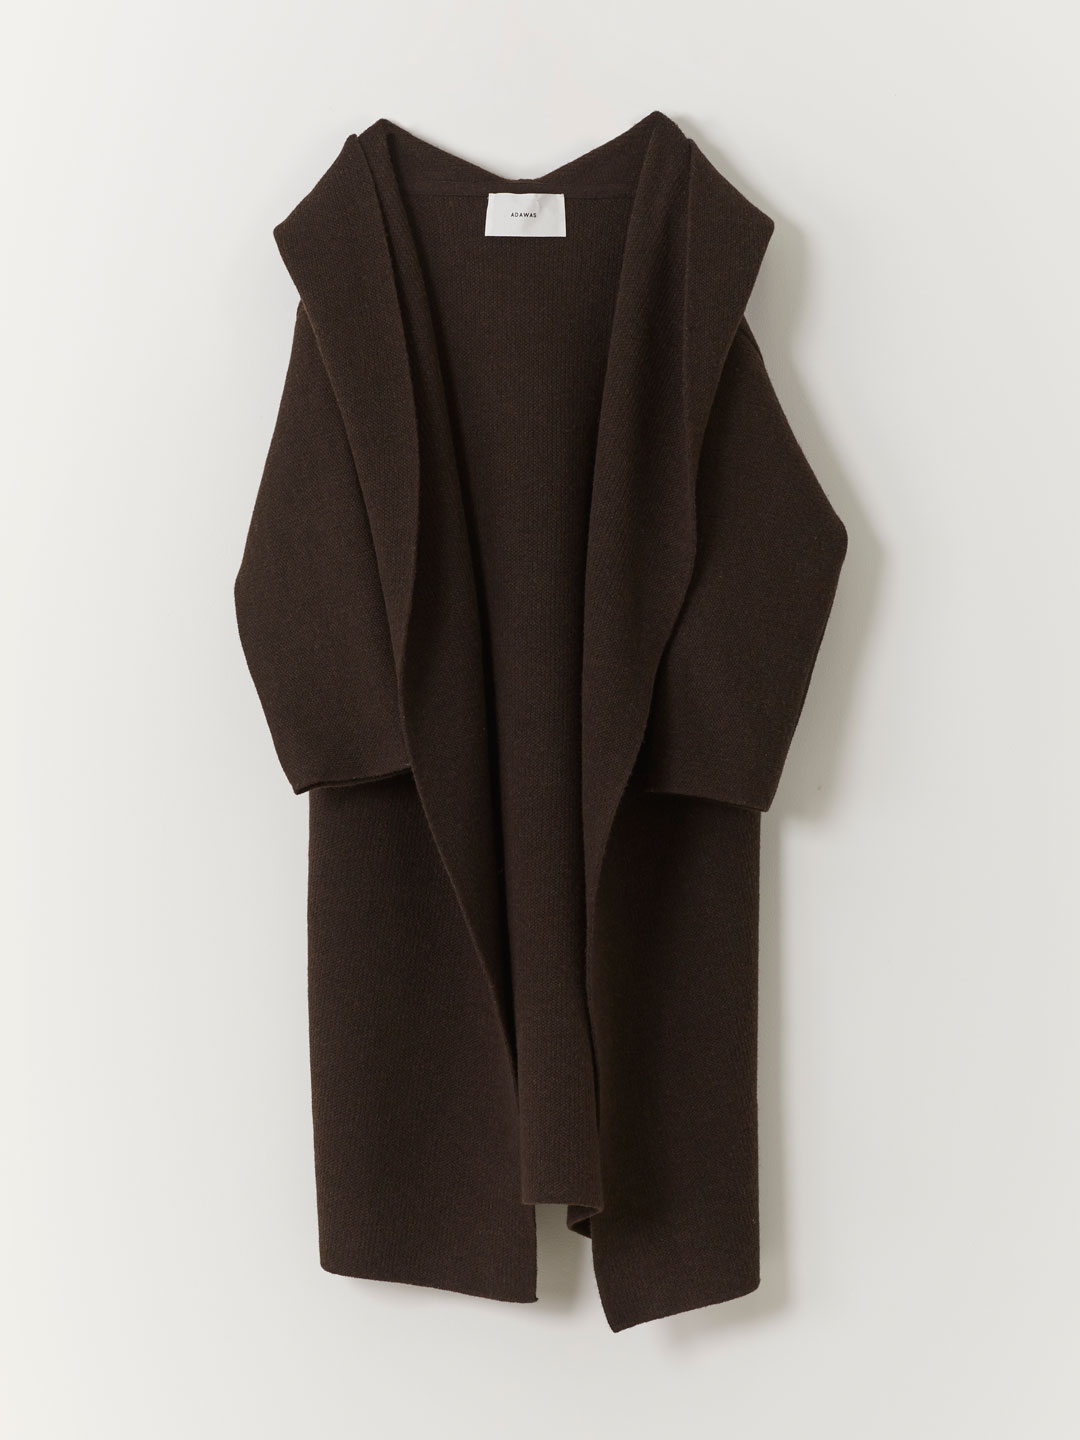 Airy Spongish Hooded Cardigan  - Brown